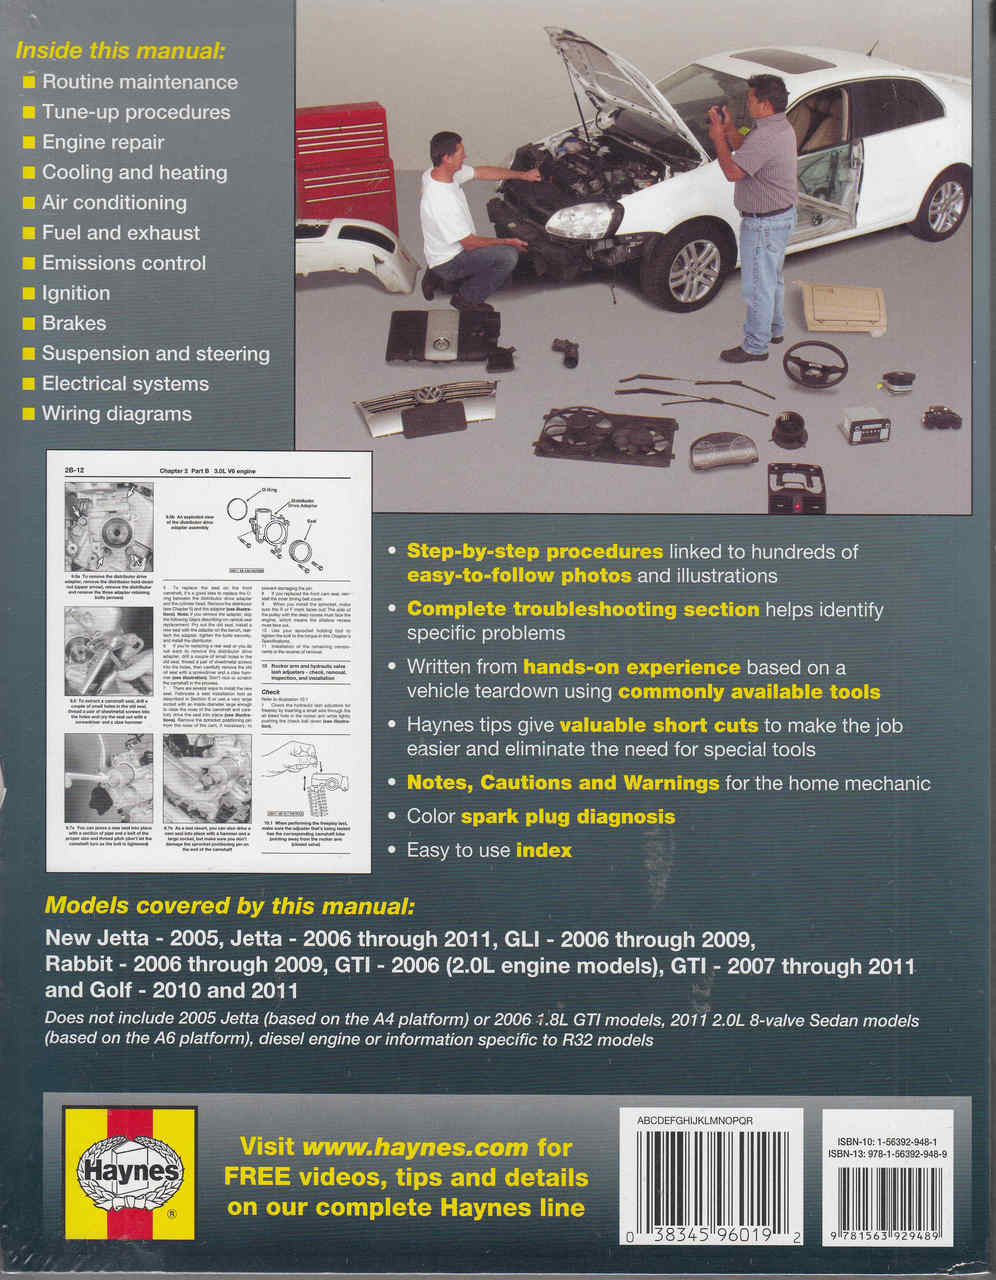 vw jetta rabbit gti golf 2006 2011 repair manual back [ 996 x 1280 Pixel ]